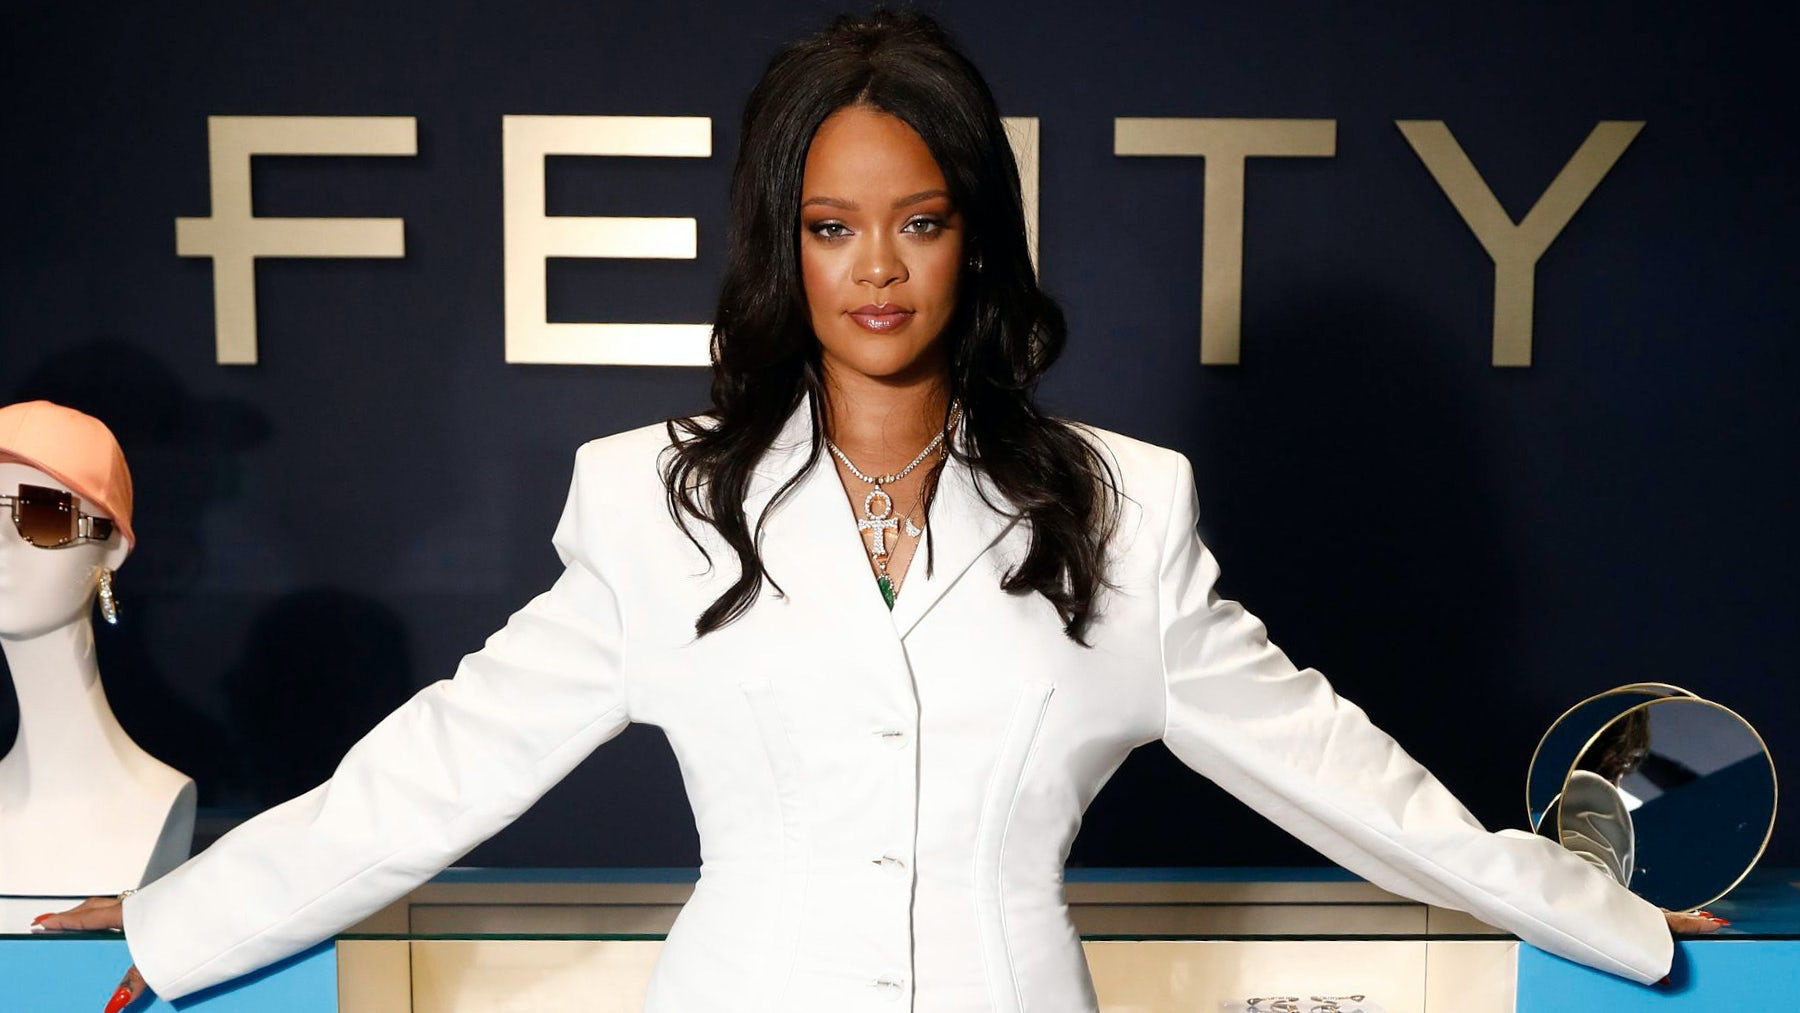 Rihanna hosts the Fenty Launch on May 22, 2019 in Paris. Getty Image.